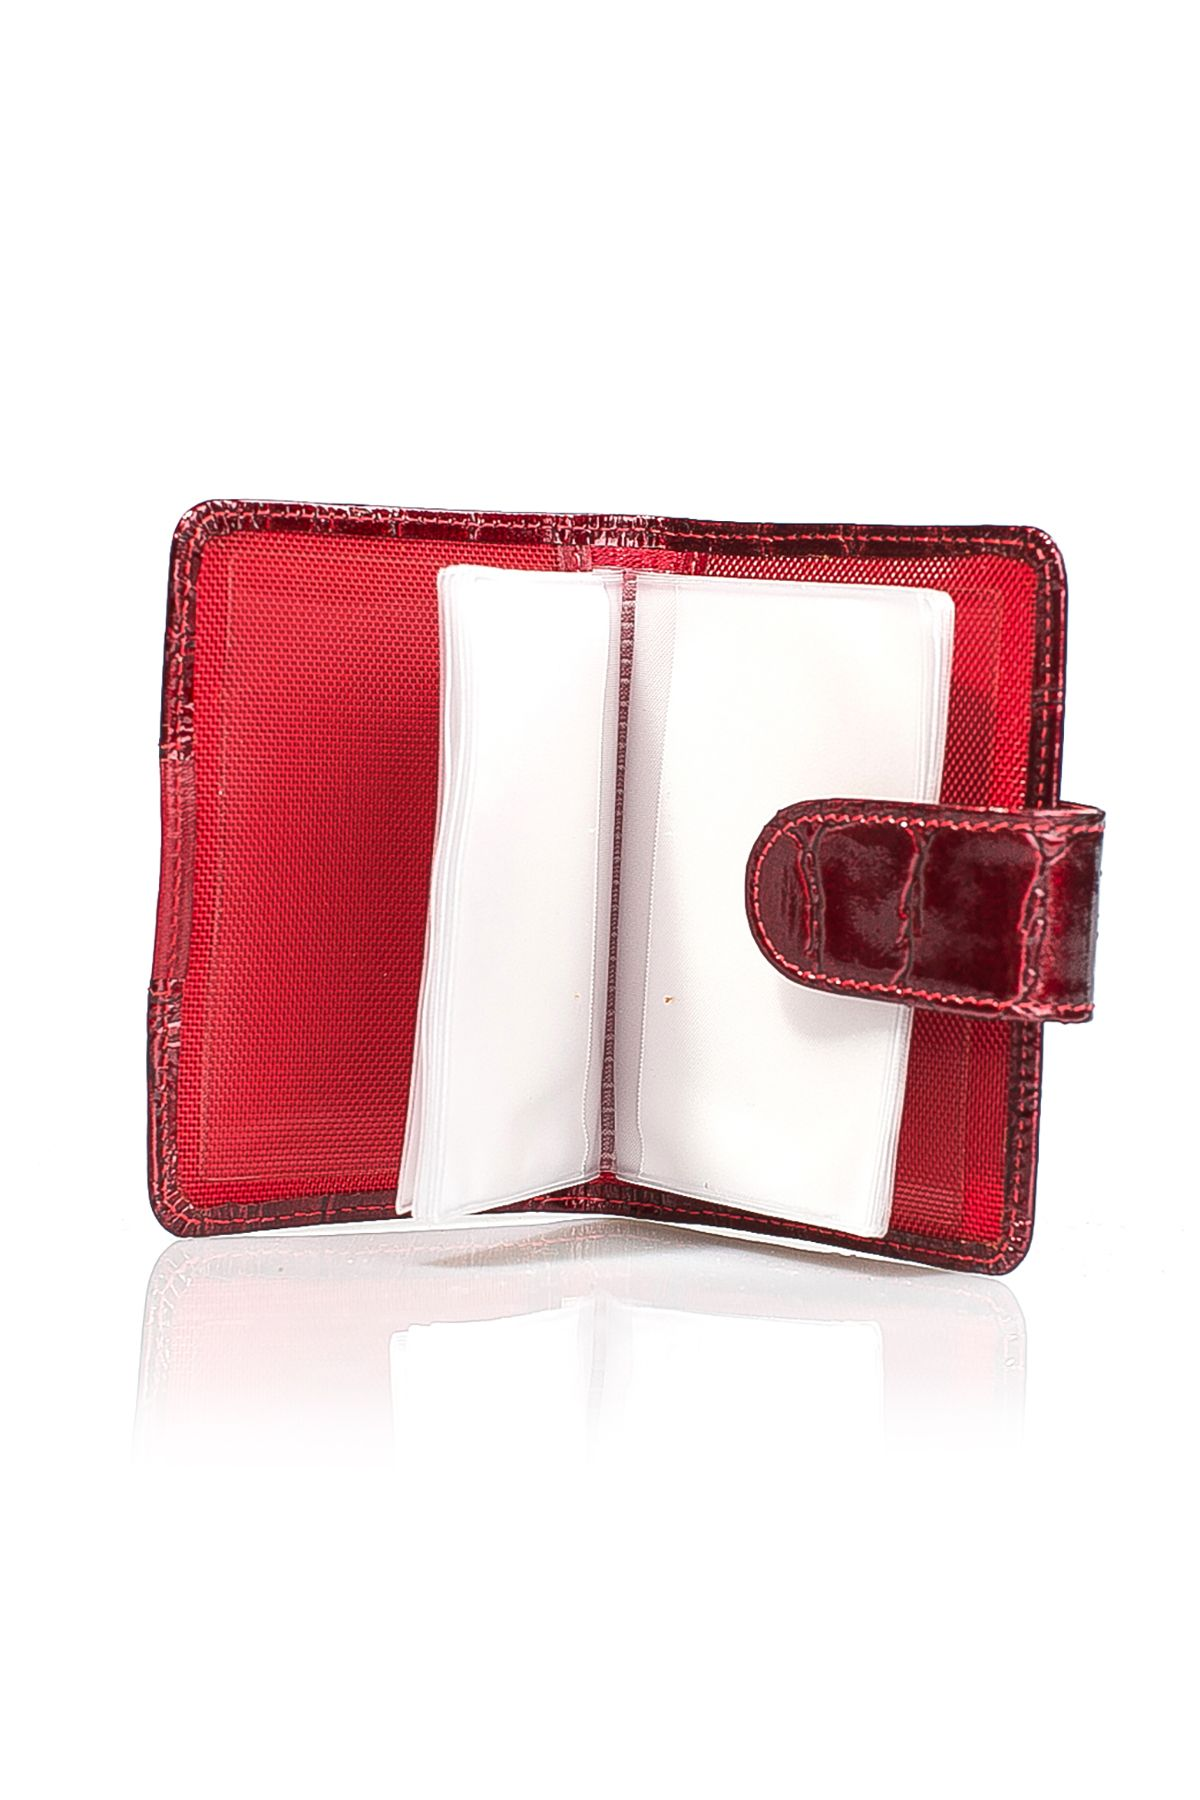 White Rabbit Pocket Wallet From Polished Leather With Crocodile Pattern Red